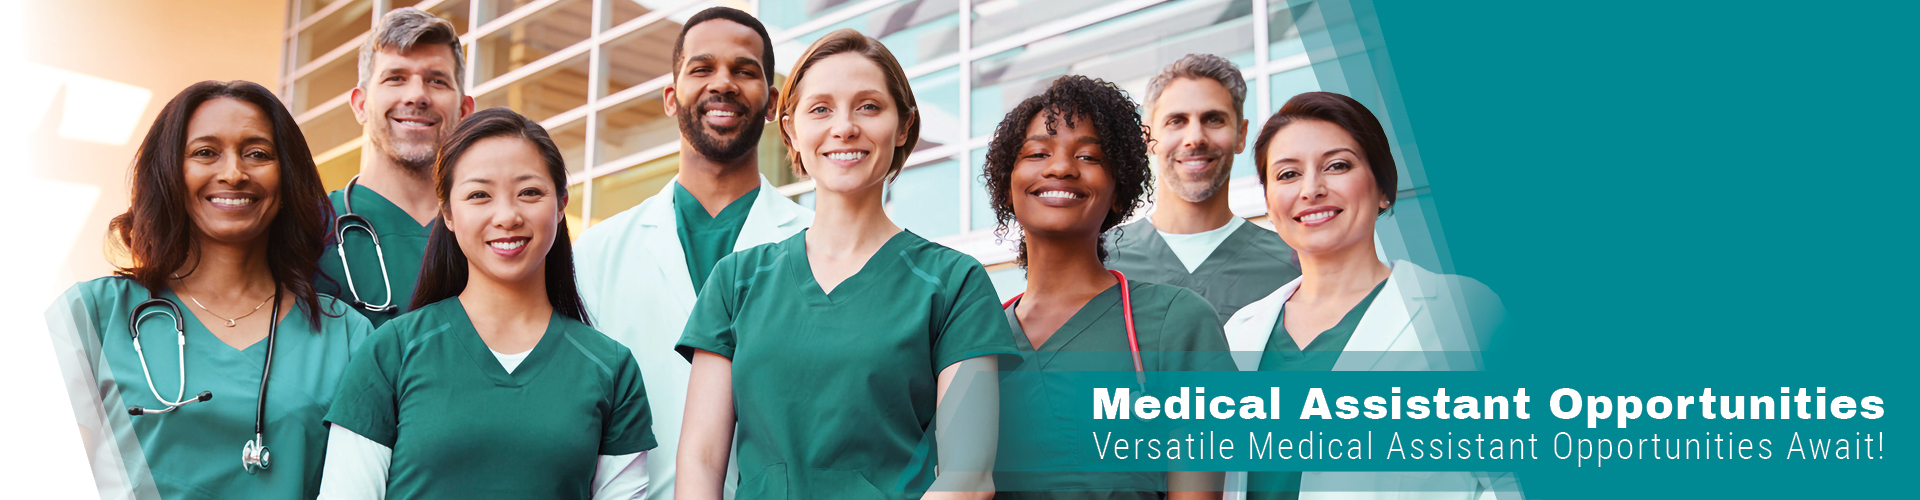 Medical Assistant Opportunities